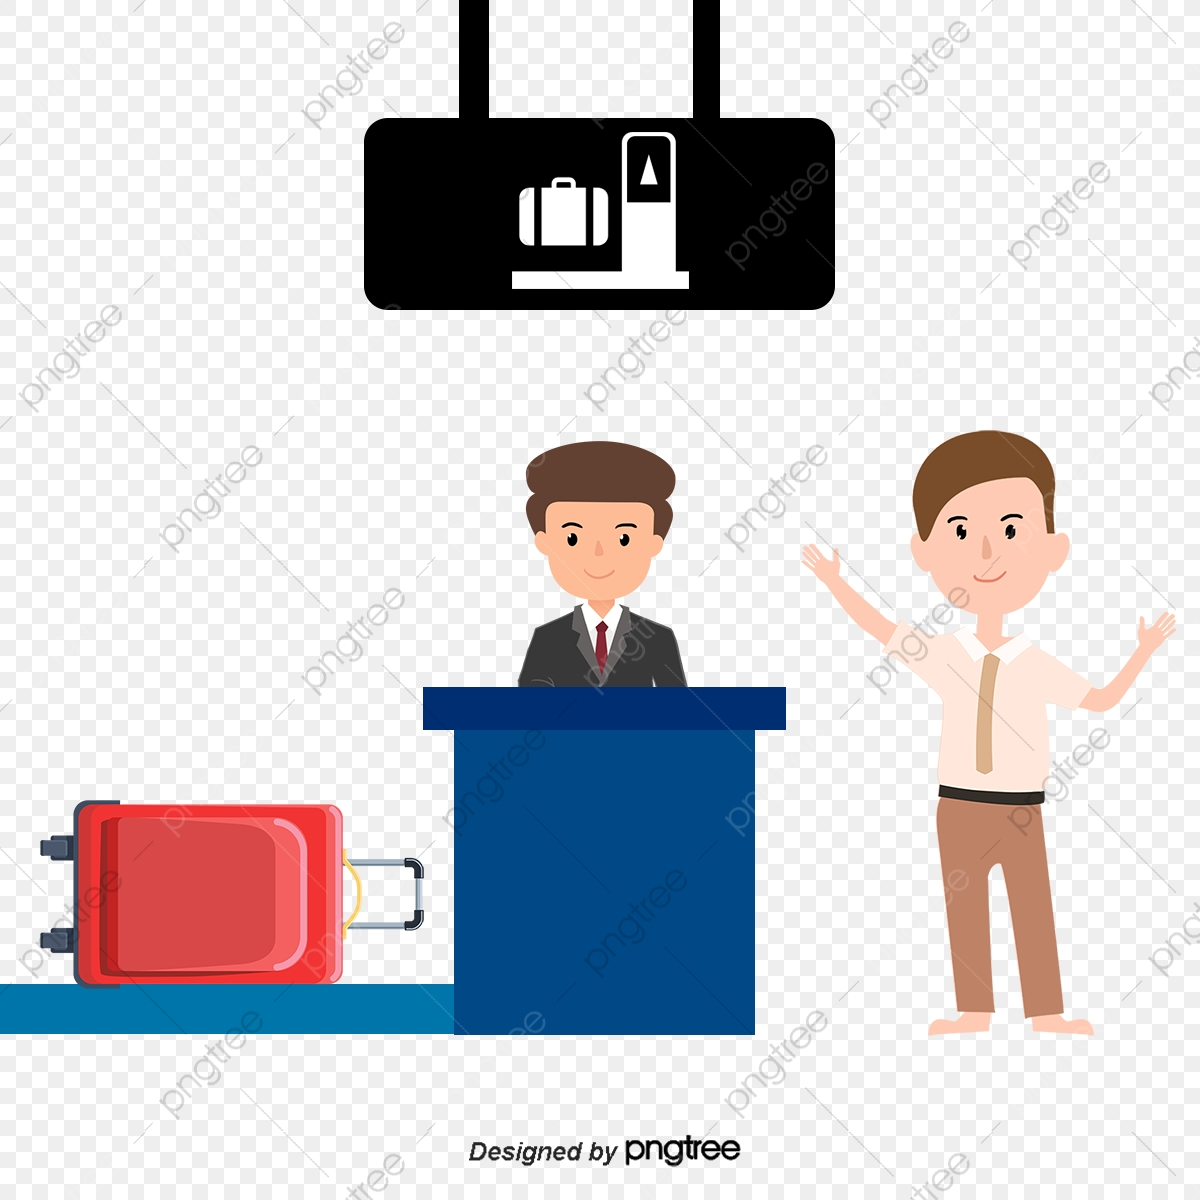 Airport Security Character Items Vector Material, Airport Clipart.